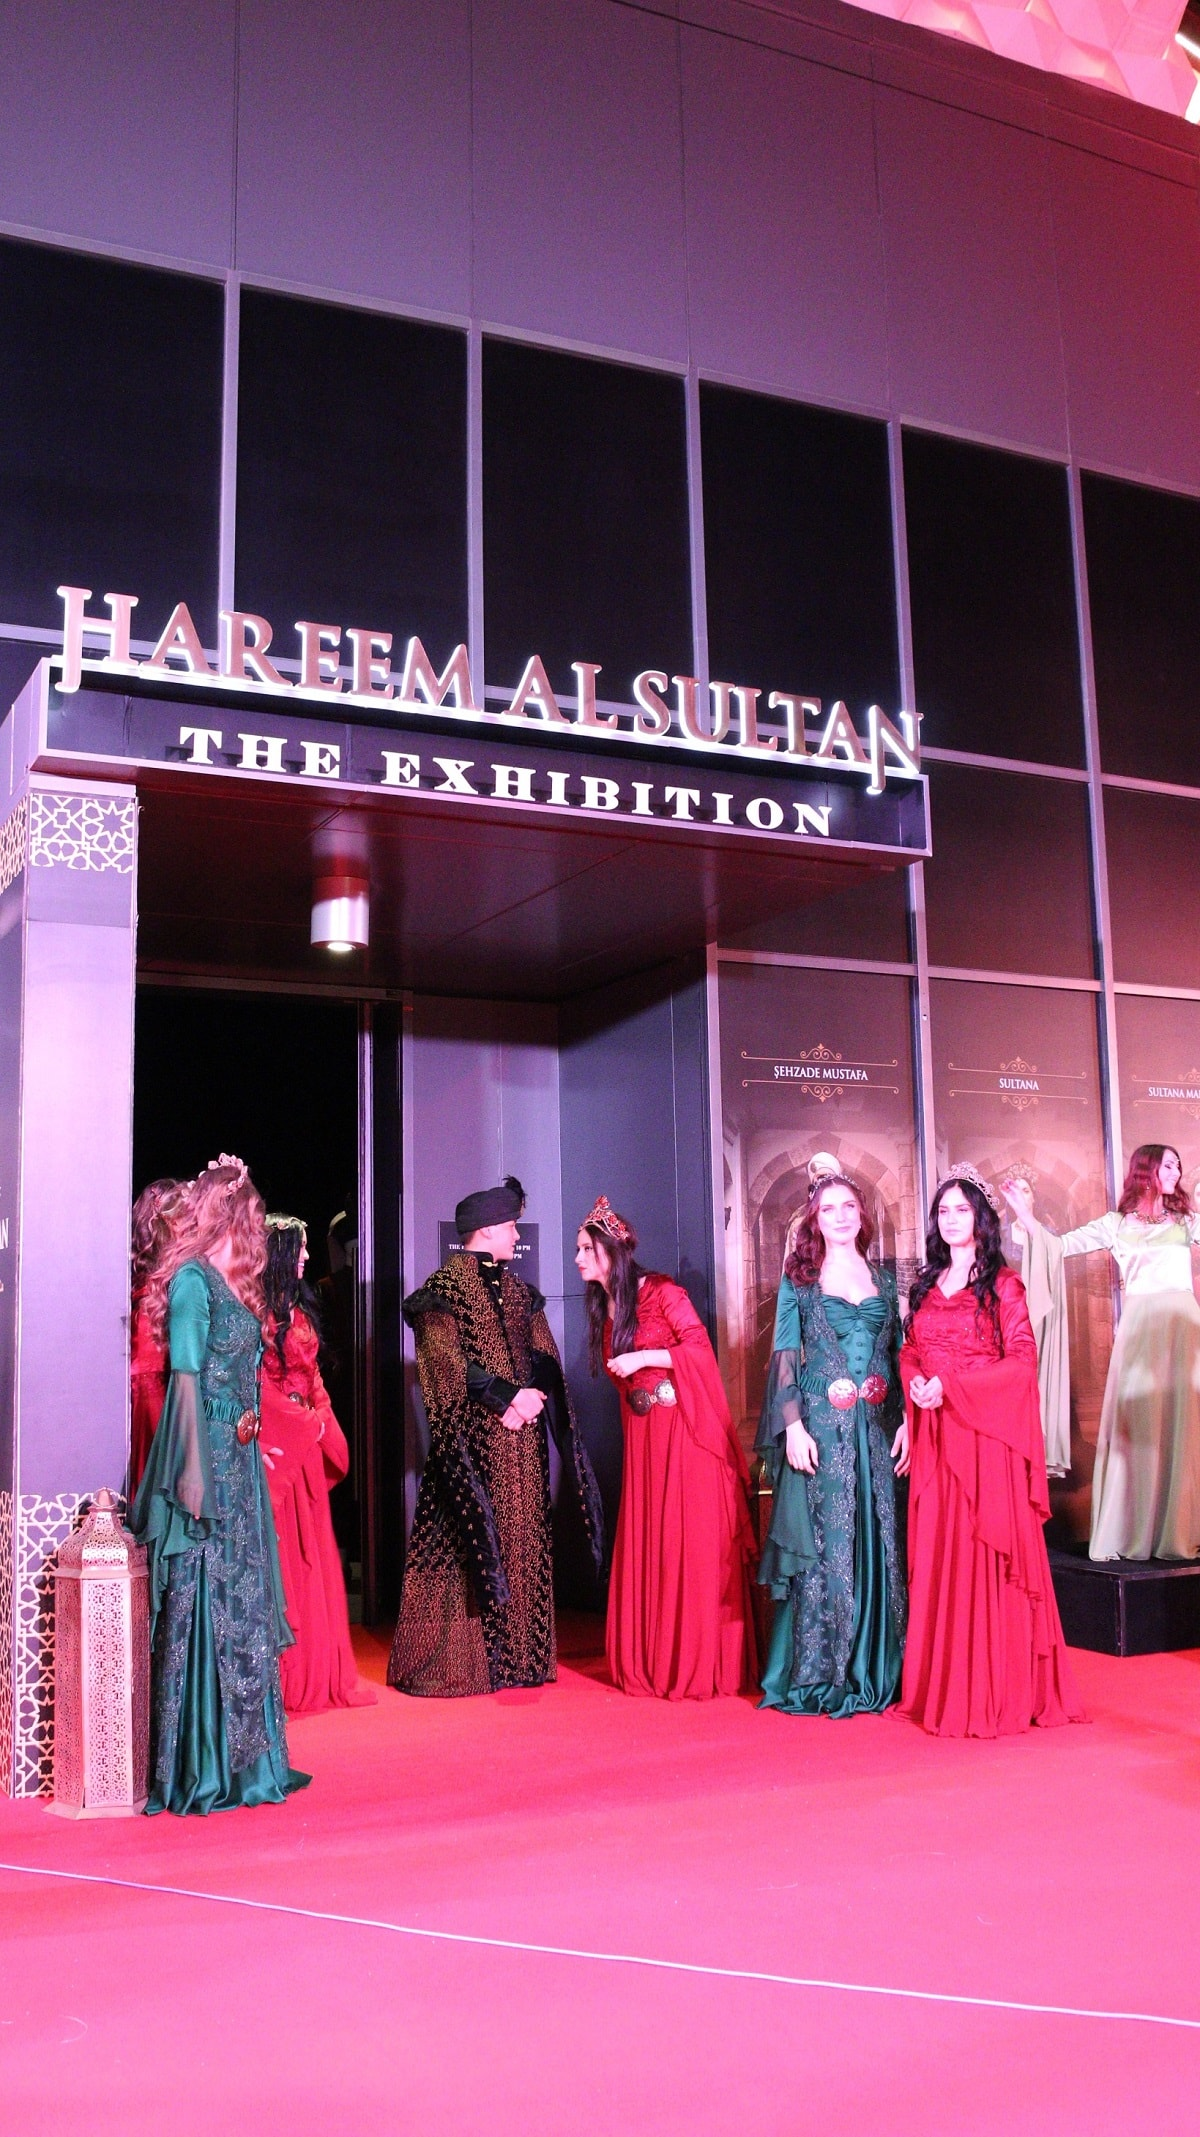 Harem Sultan Exhibition